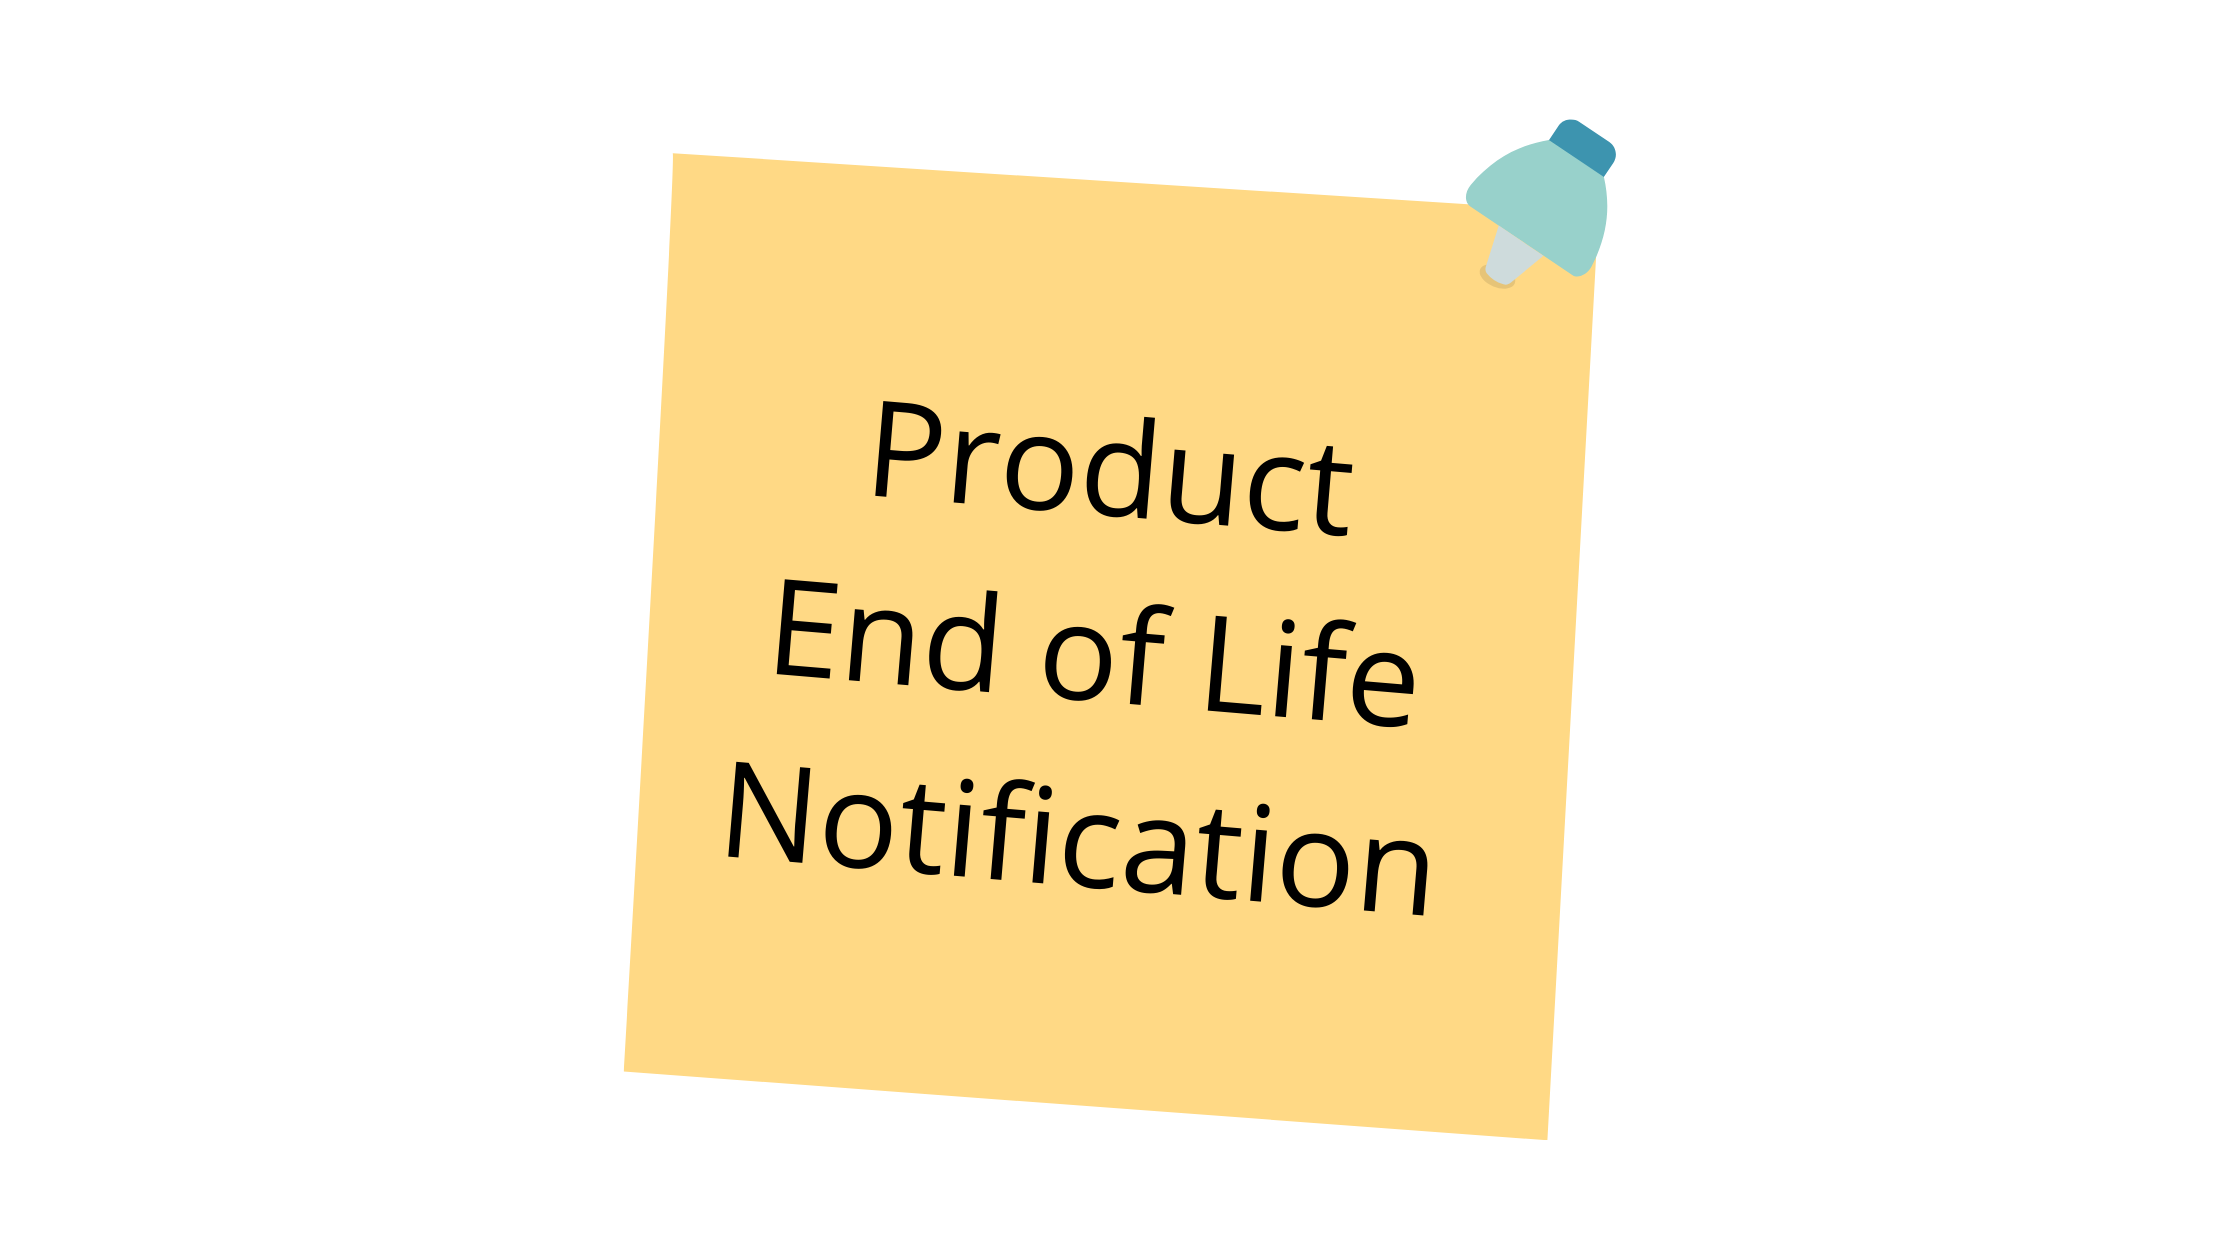 end-of-life-notification-qc-analytics